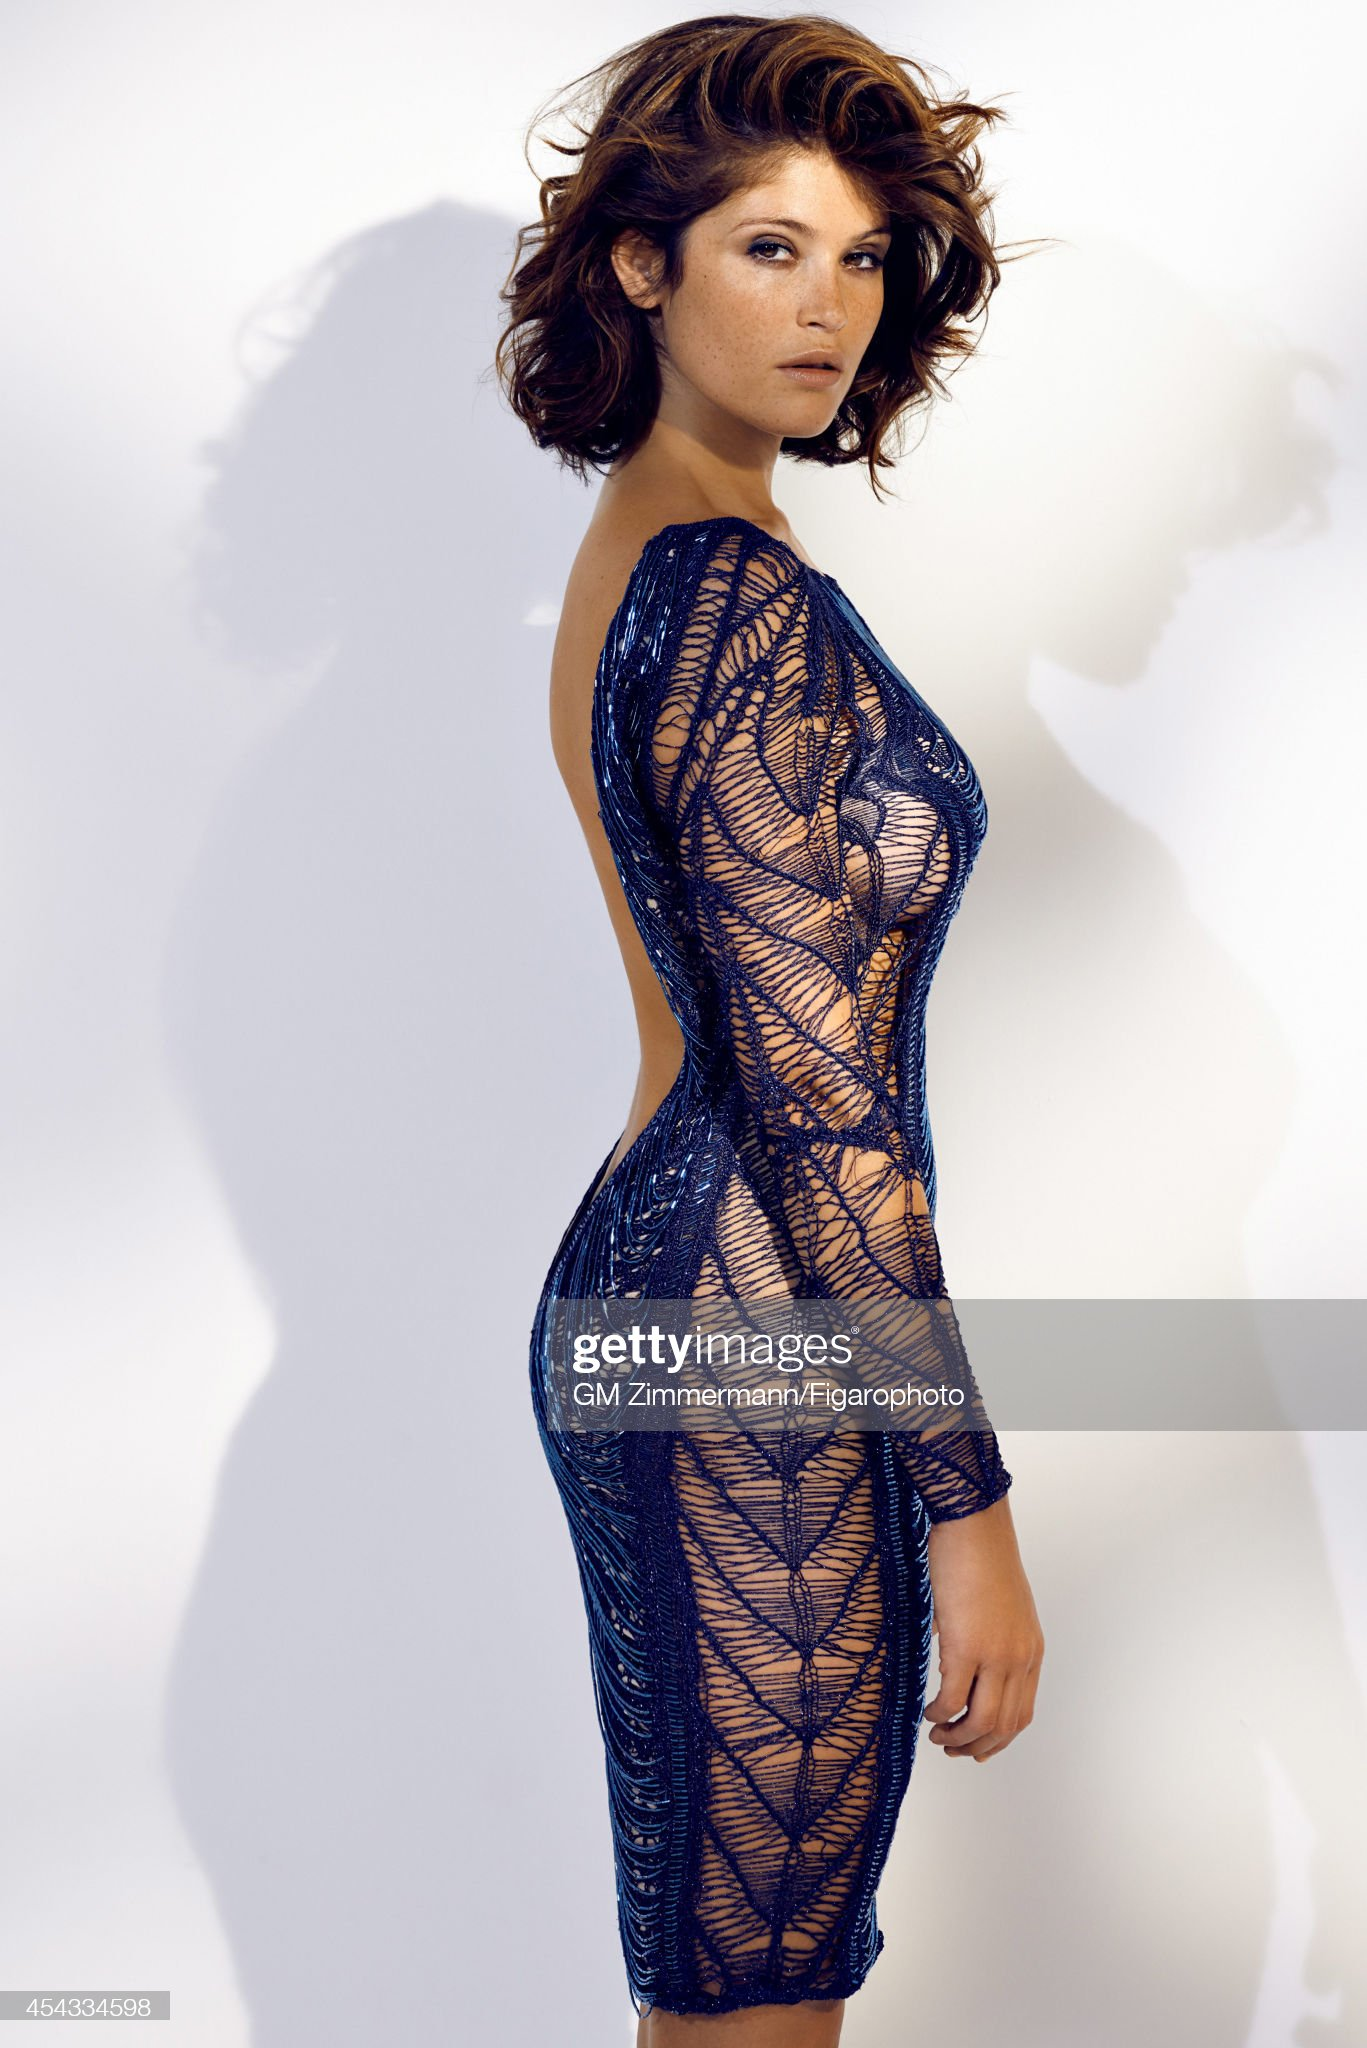 actress-gemma-arterton-is-photographed-for-madame-figaro-on-june-19-picture-id454334598